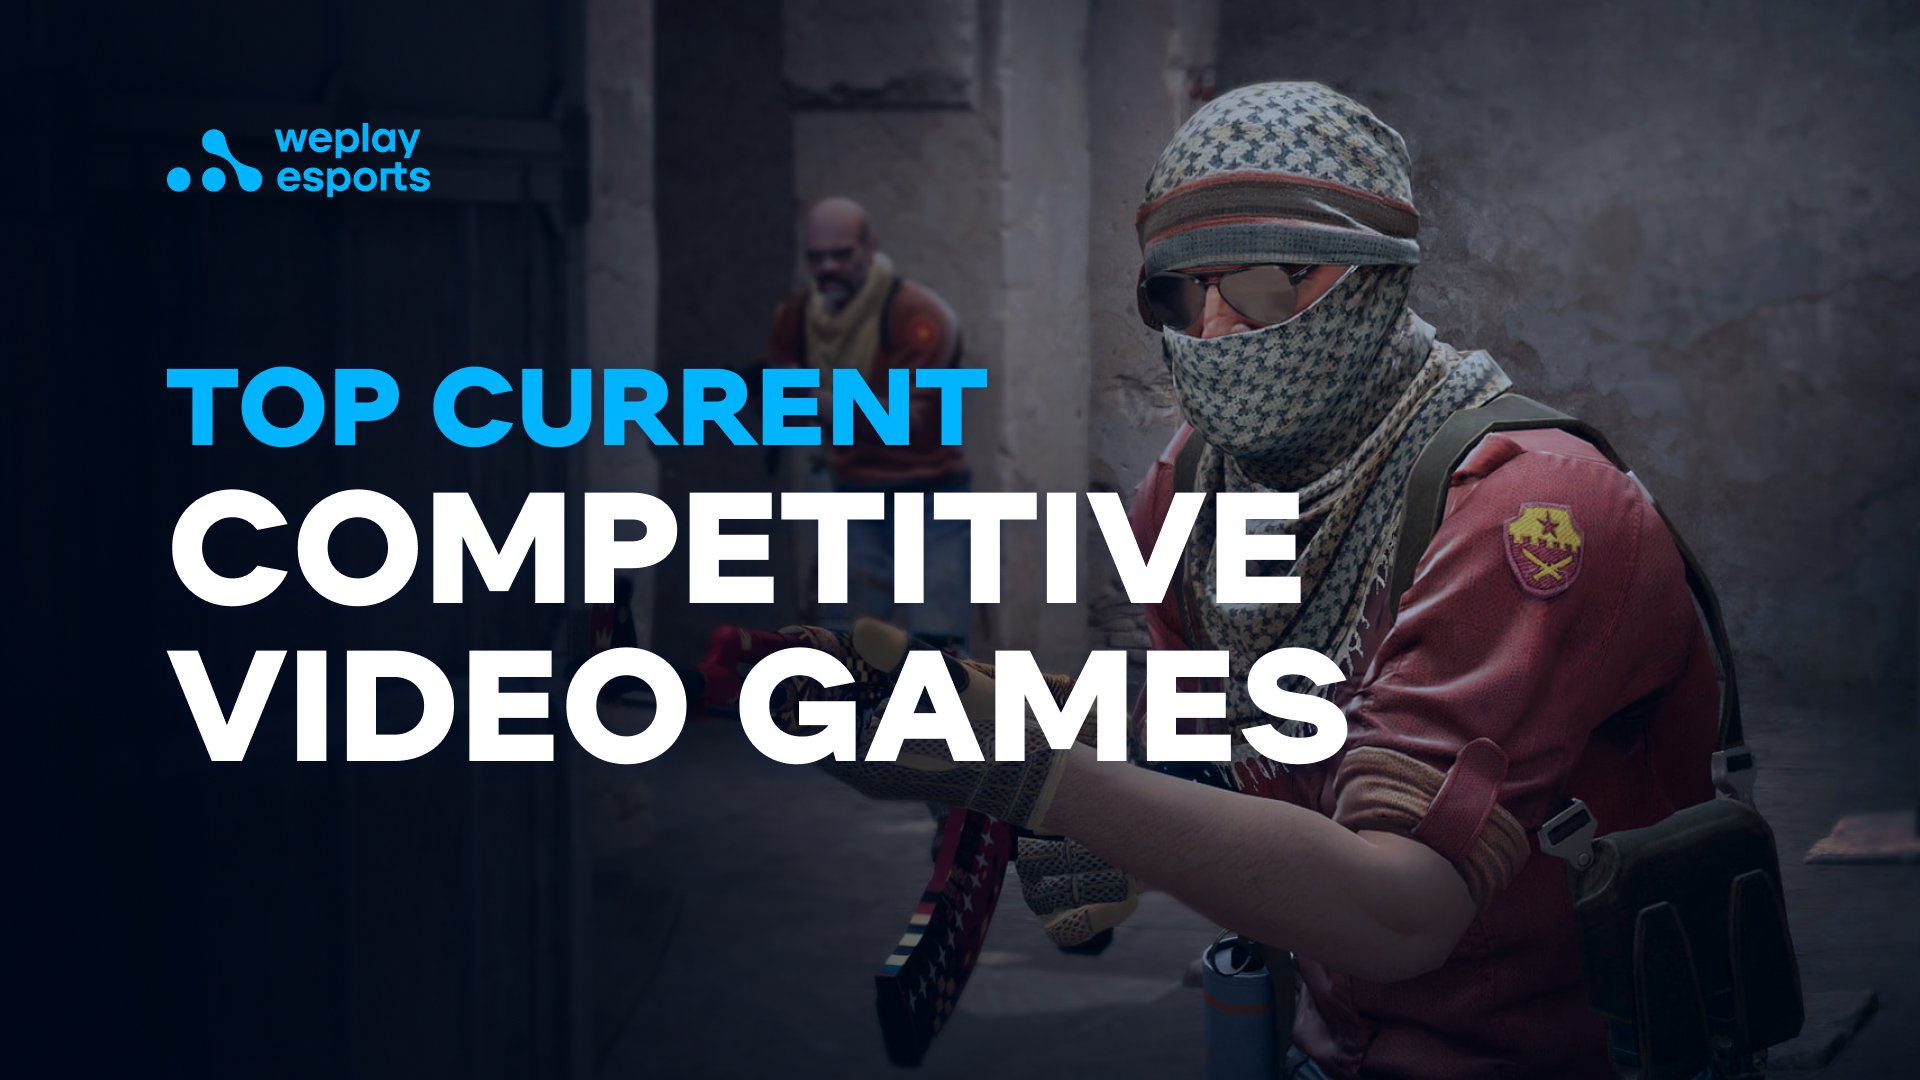 Top Current Competitive Video Games